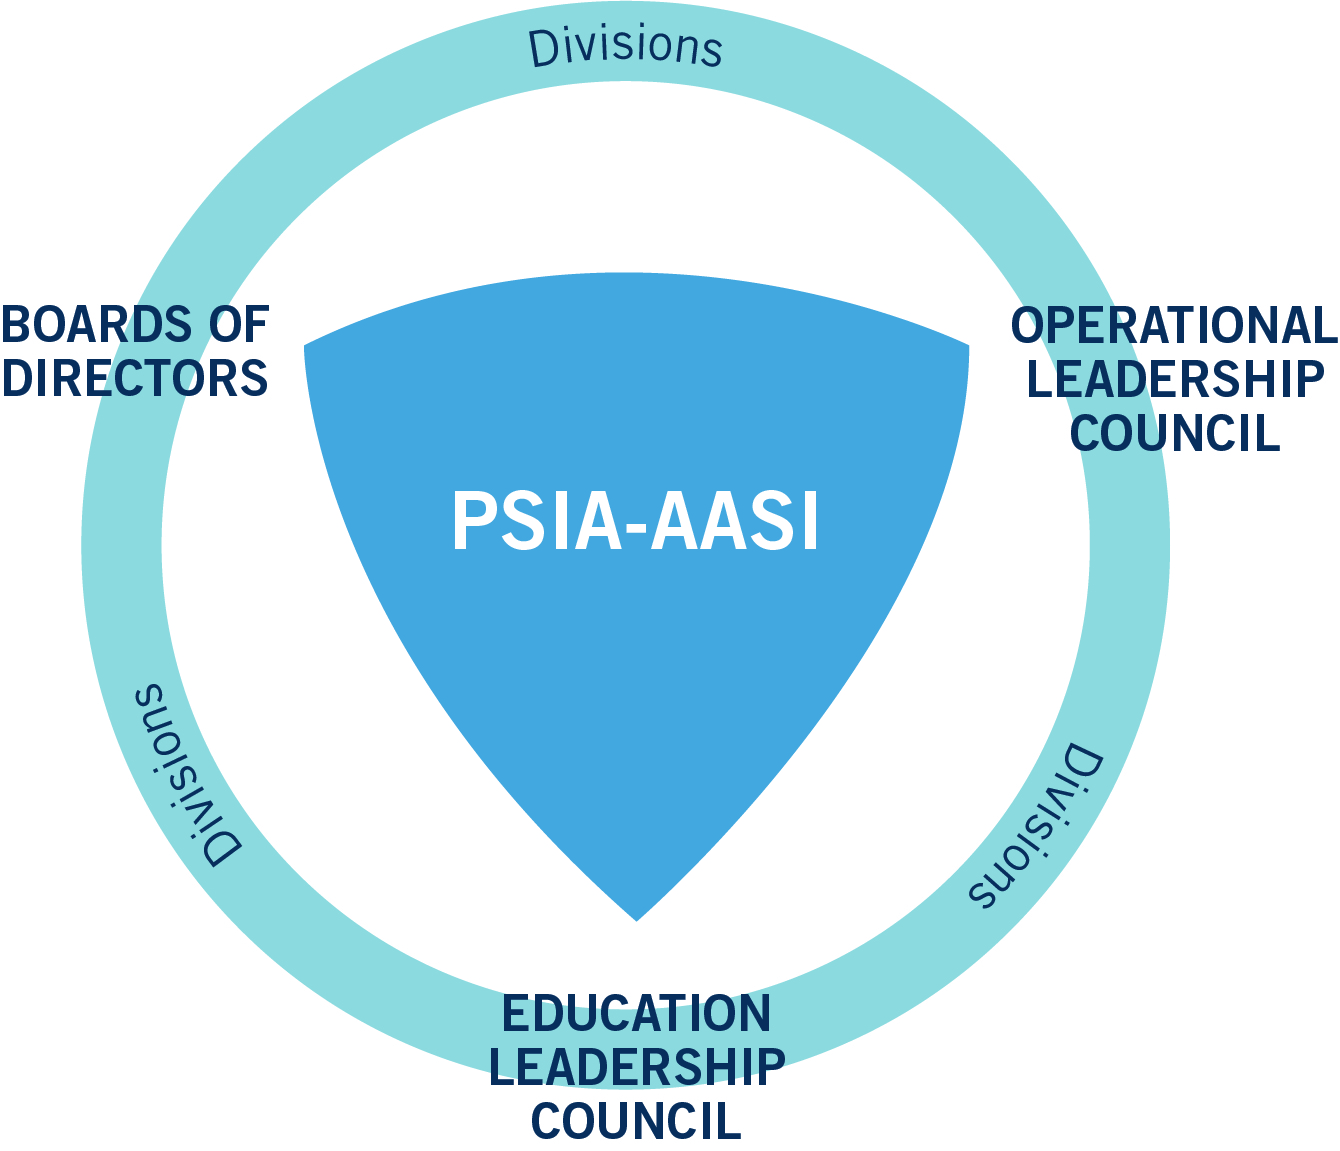 PSIA-AASI leadership diagram